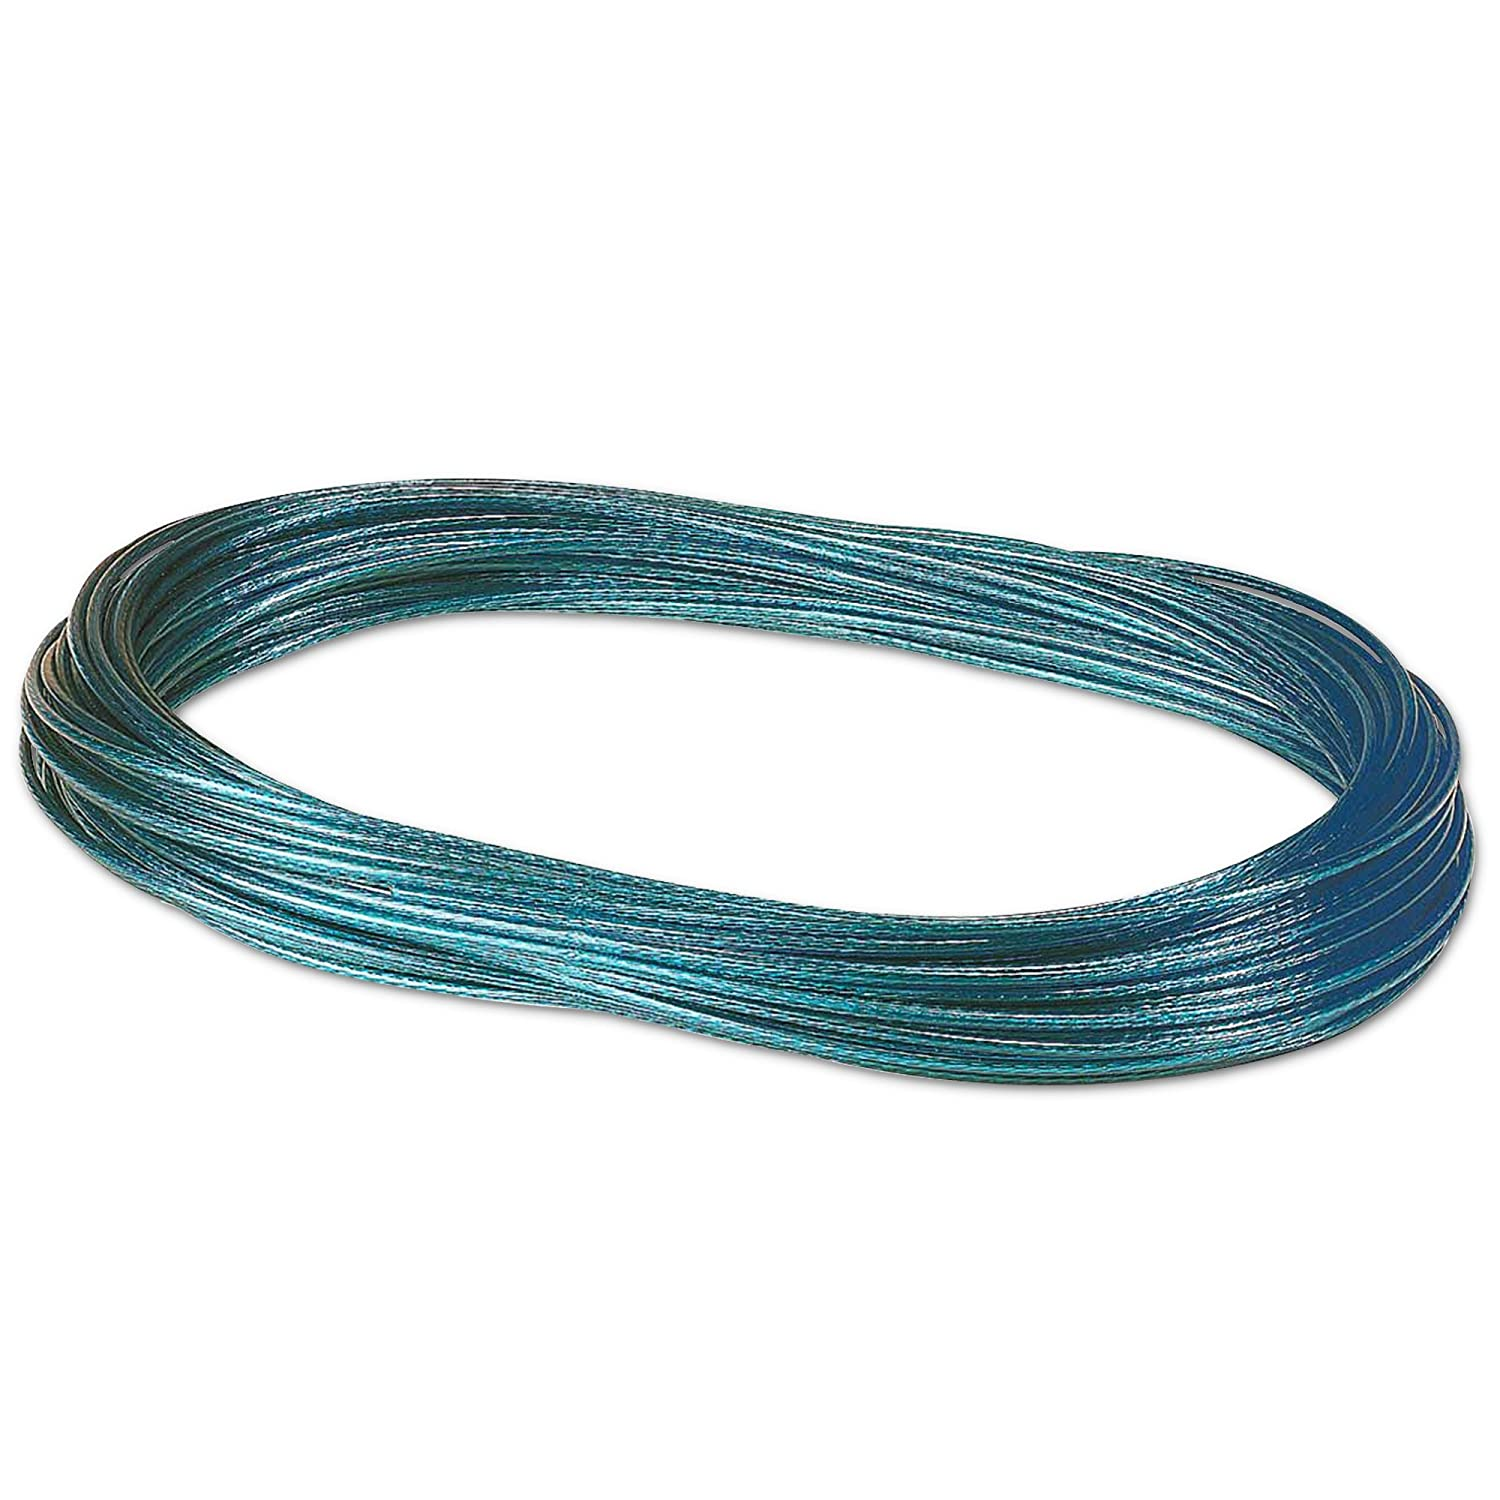 Amazon.com : Above Ground Winter Pool Cover Cable Wire - 100 Feet ...